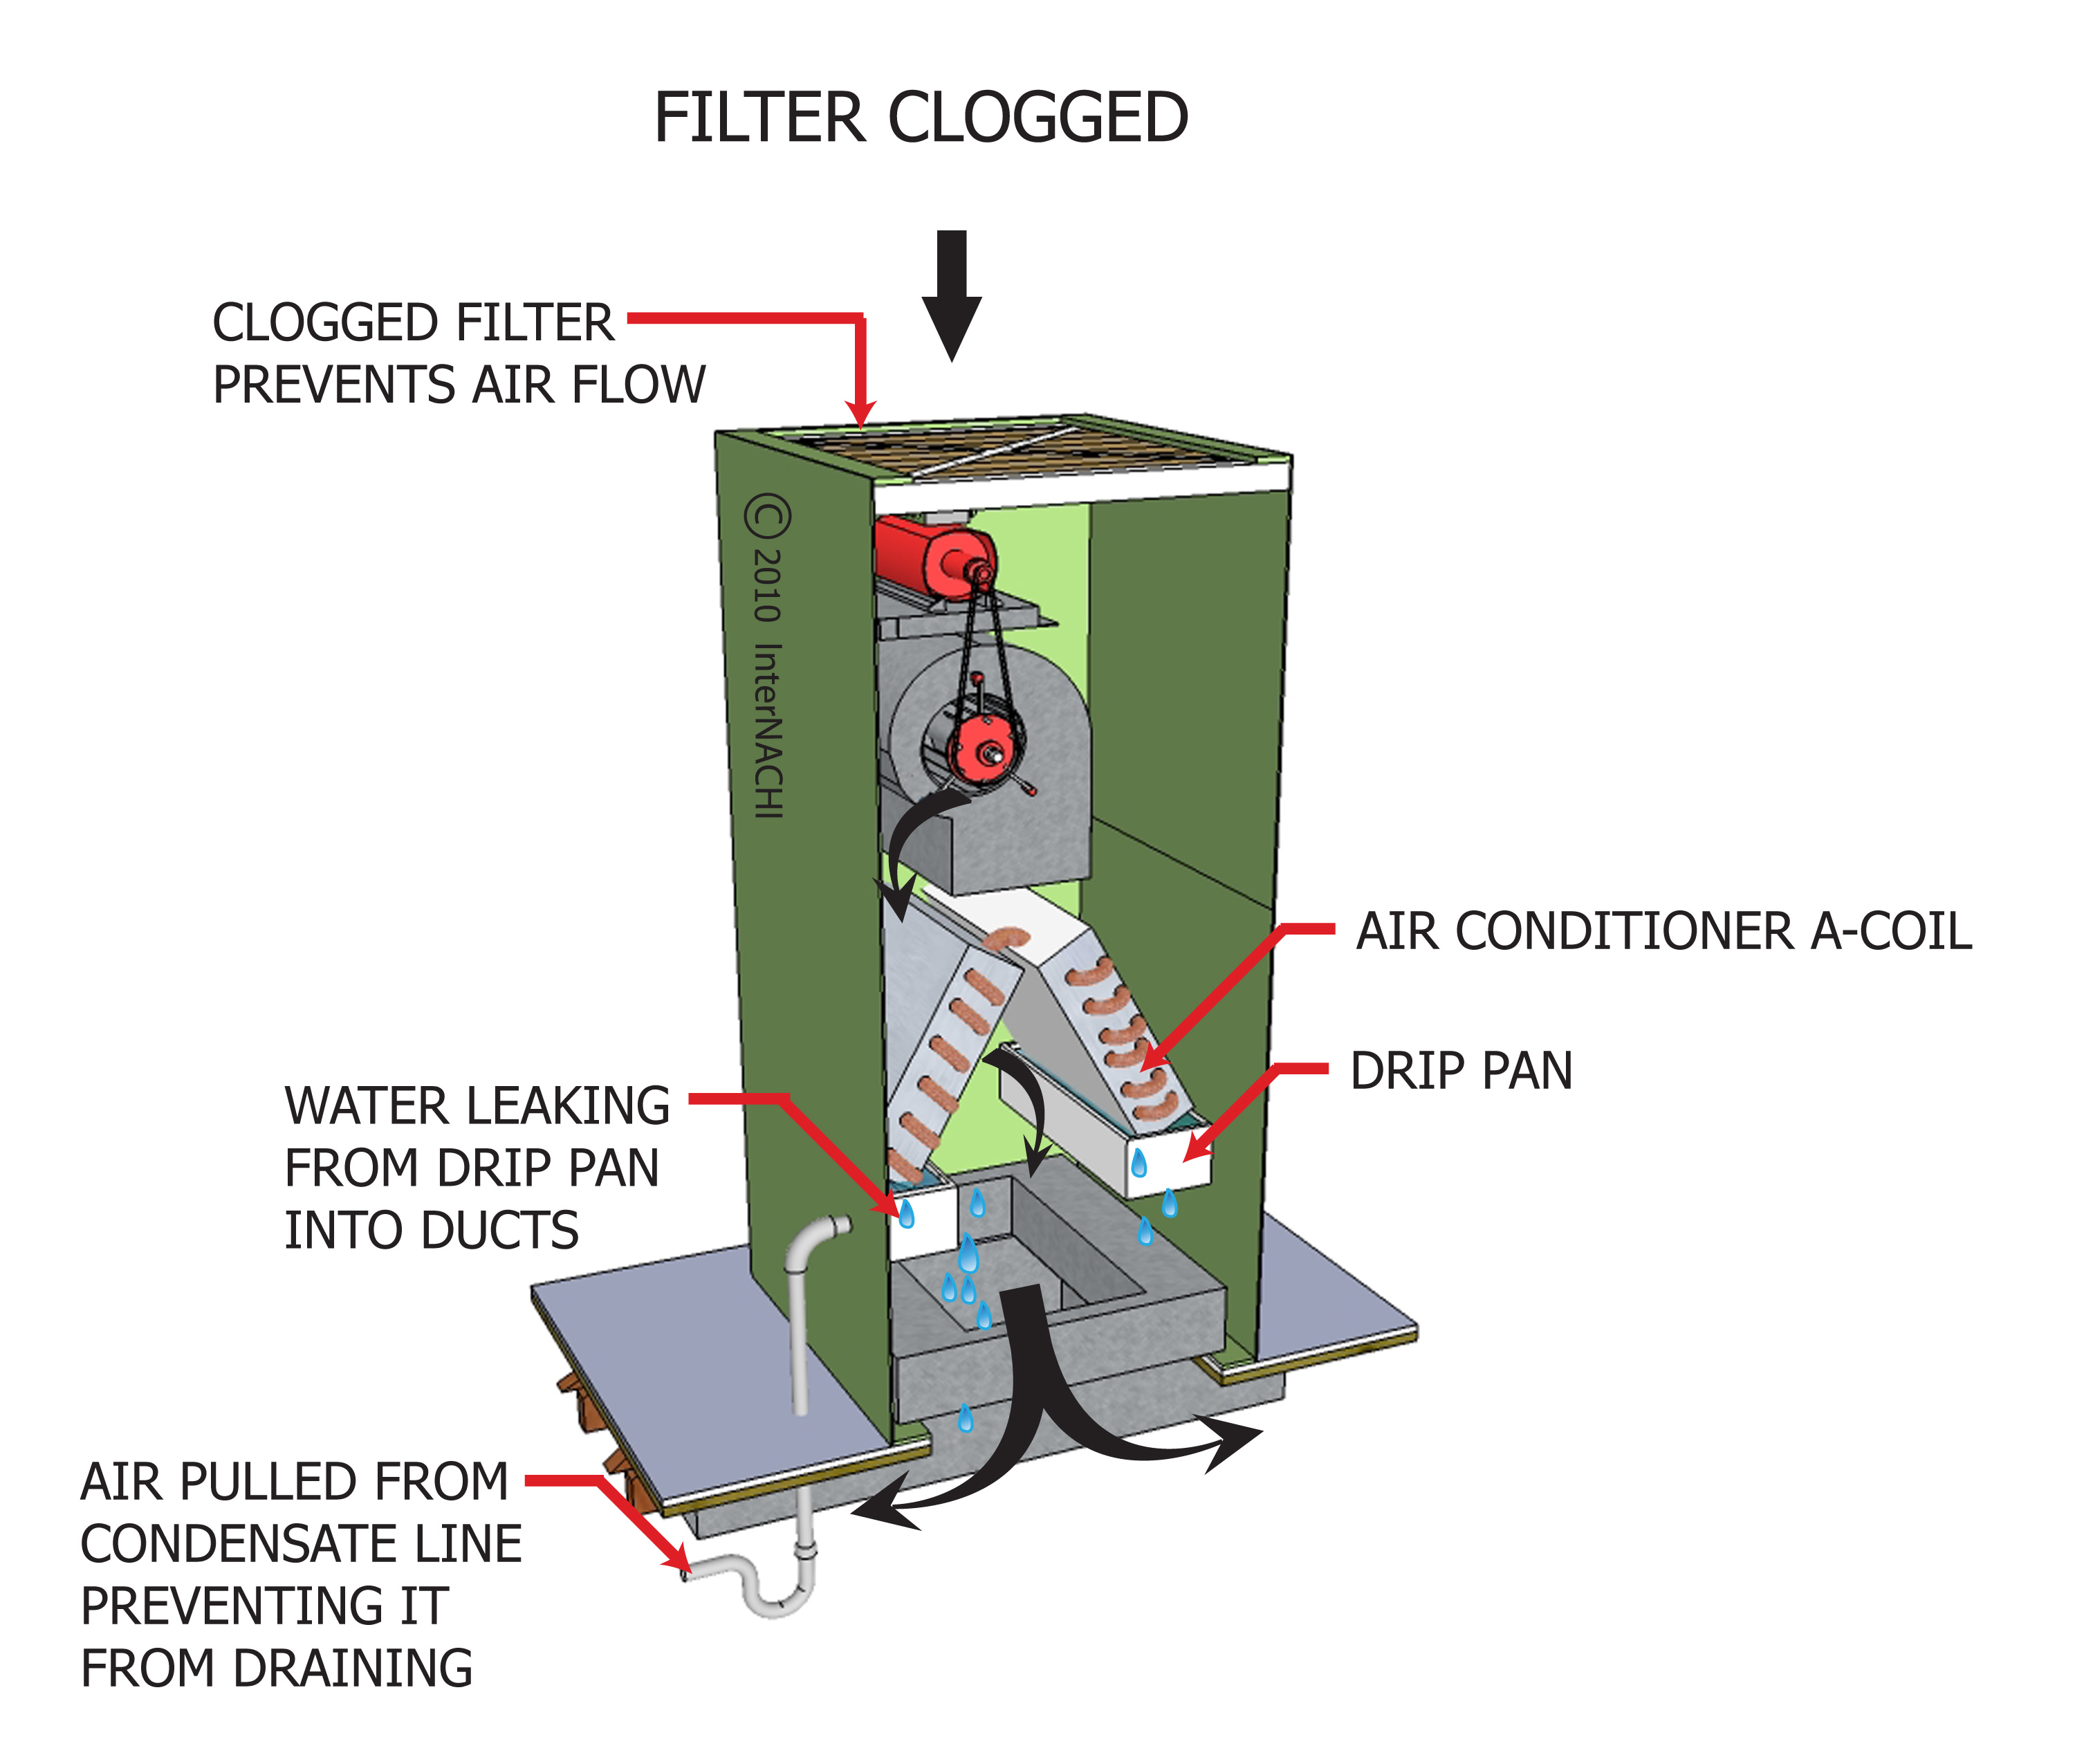 Clogged filter.